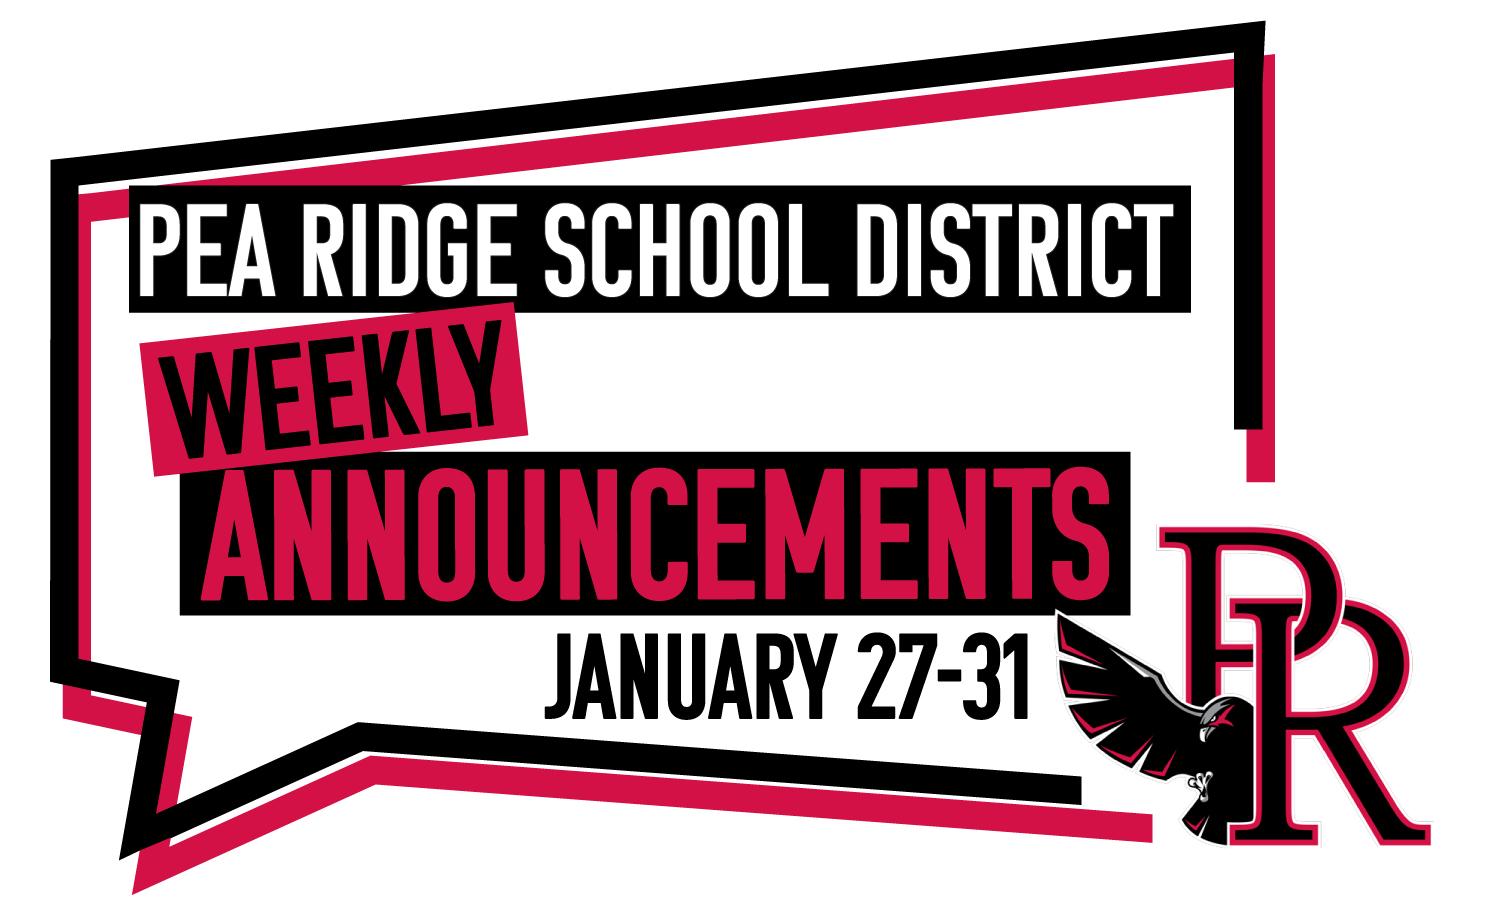 Weekly Announcements Jan. 27-31